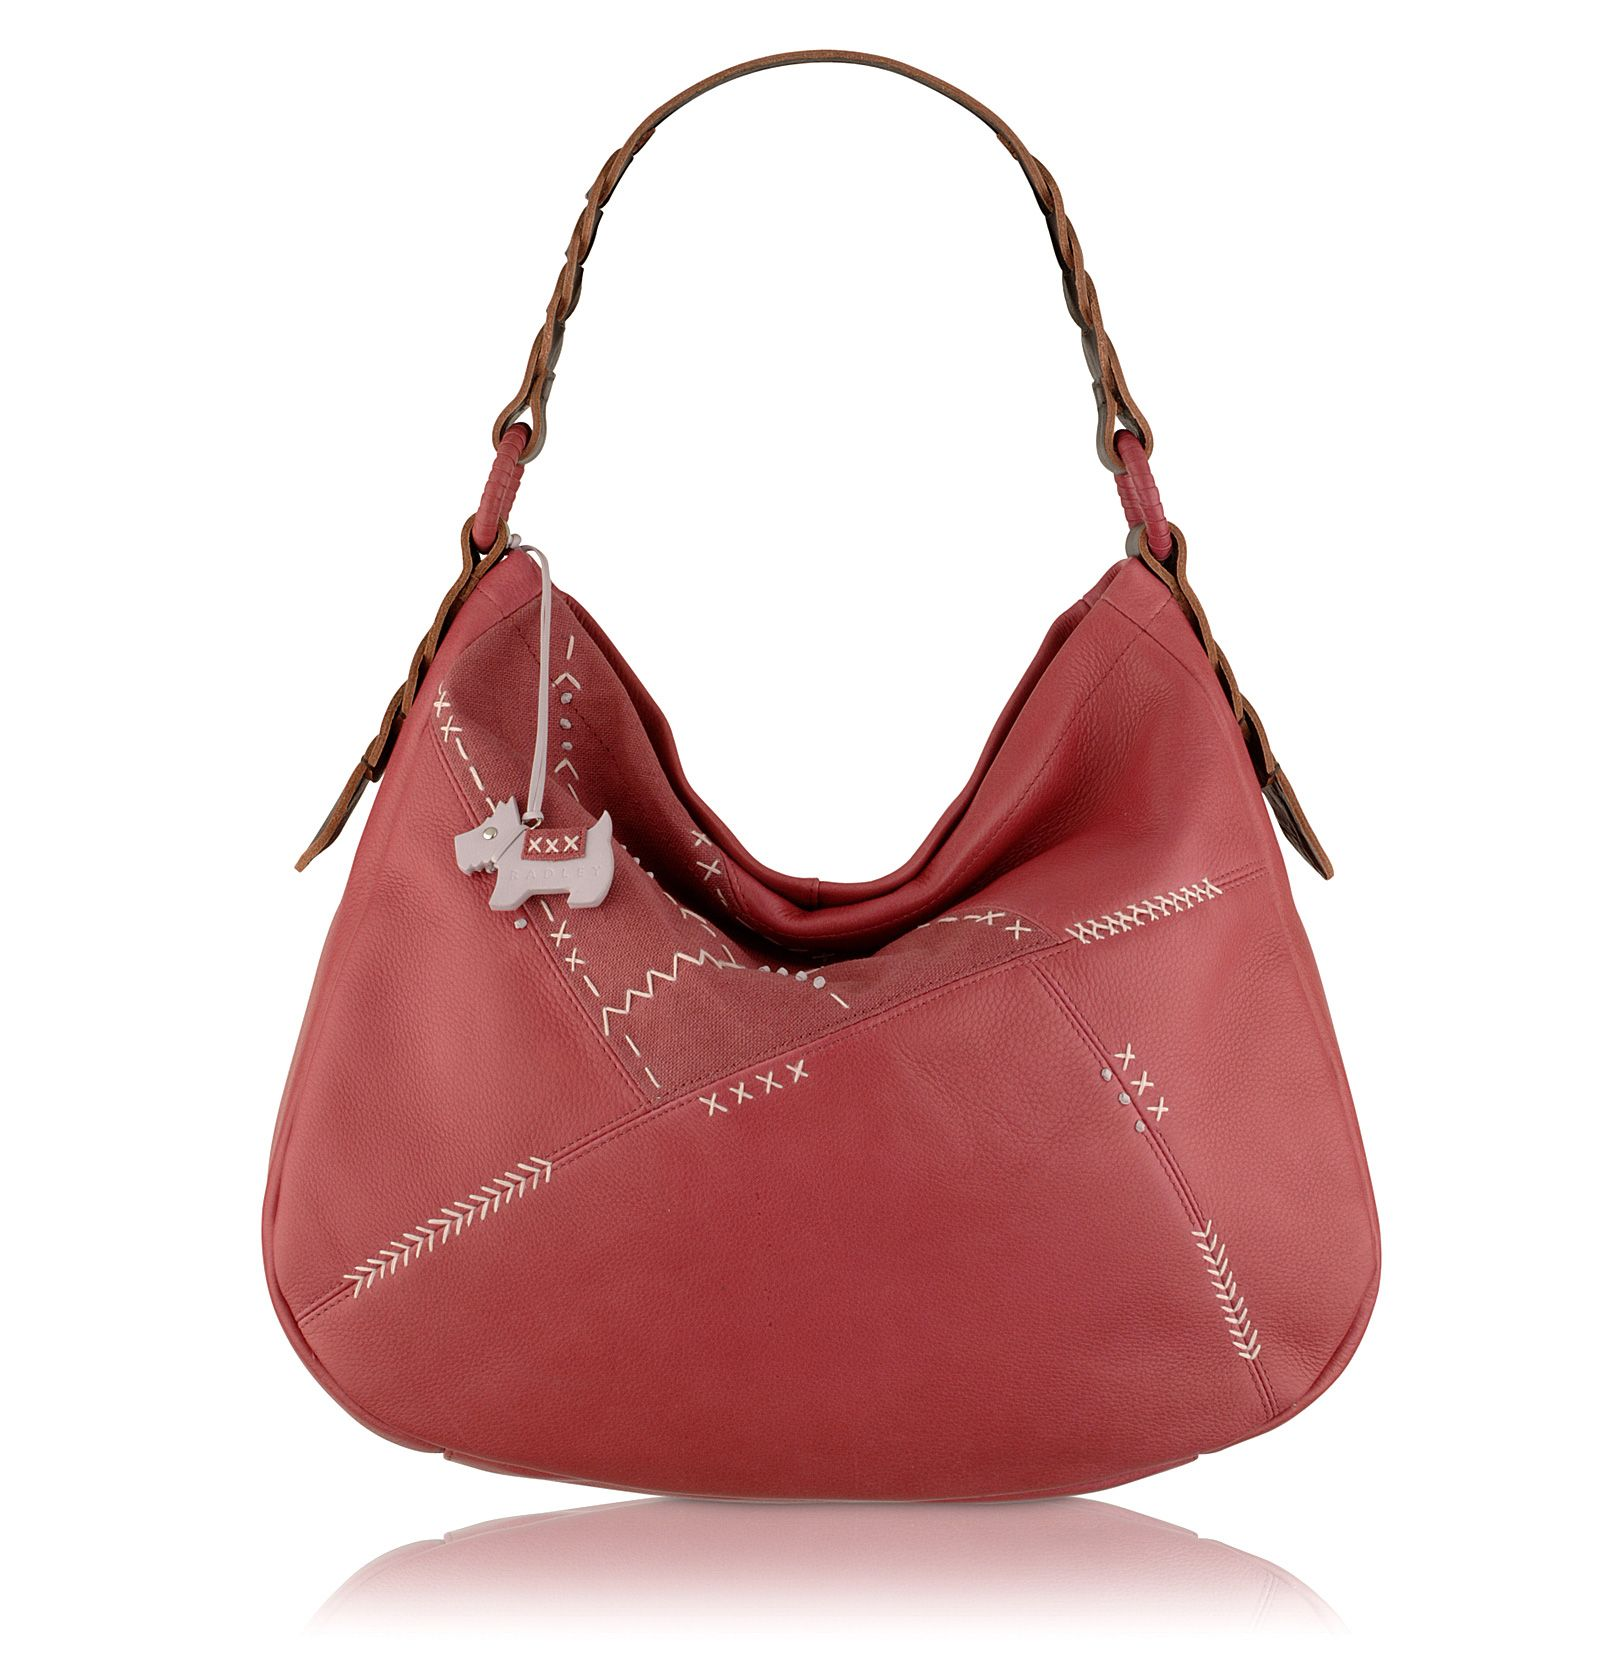 Trowbridge leather hobo bag.